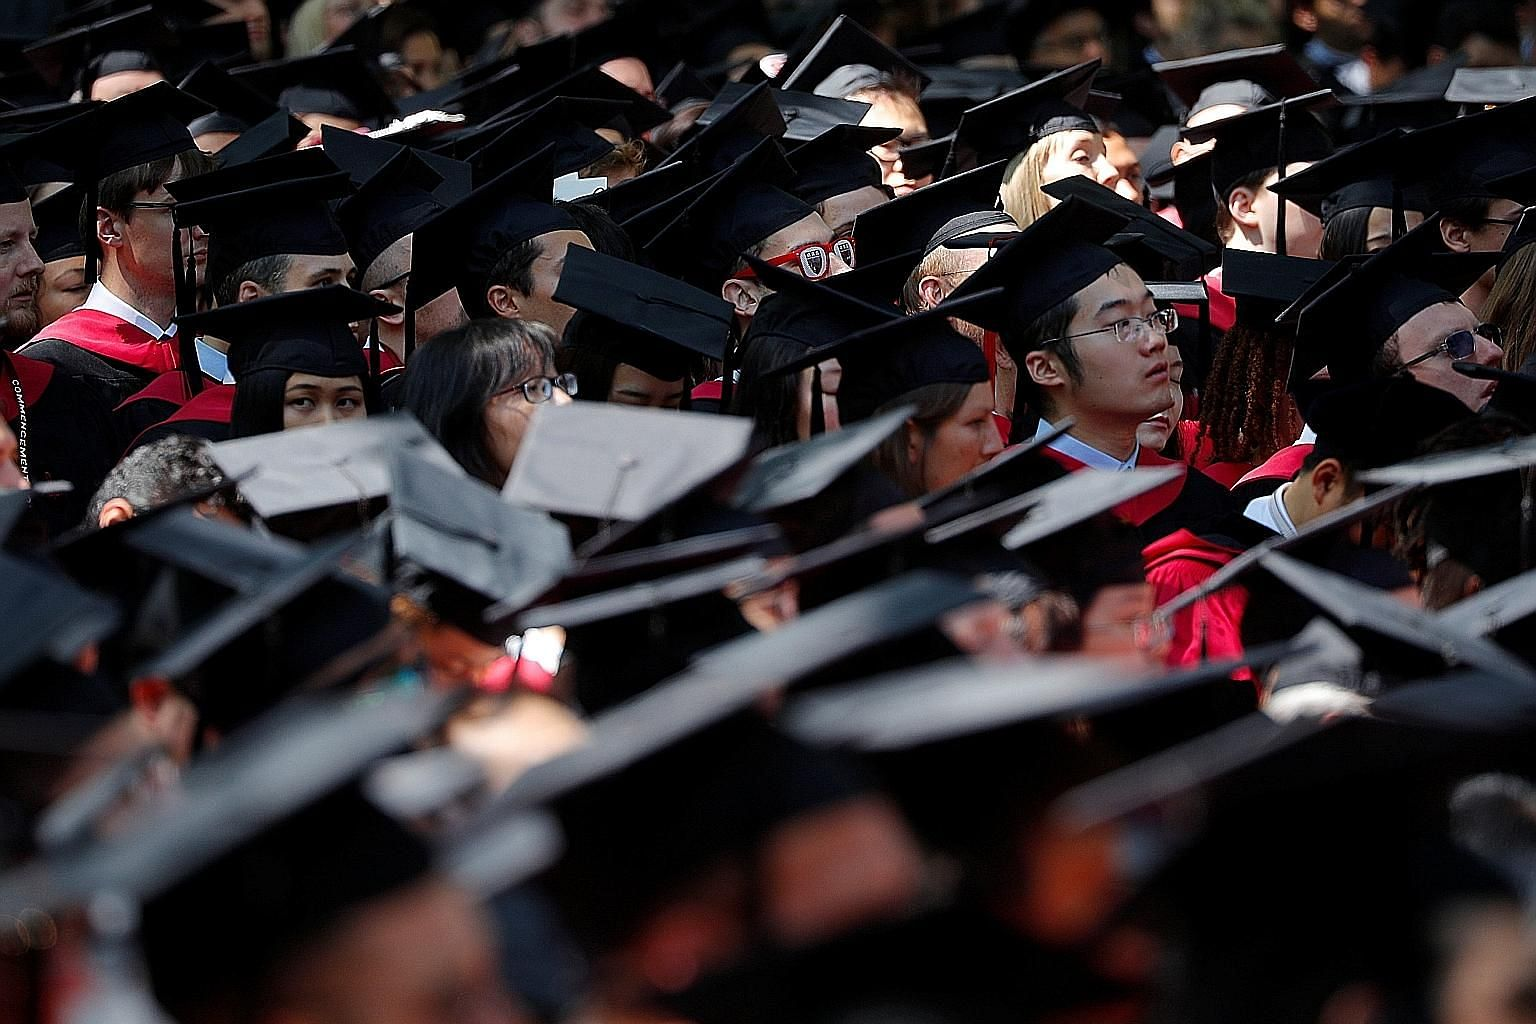 """Education Minister Ong Ye Kung has called education a """"great social leveller"""" in Singapore where students of various backgrounds are given opportunities to learn and progress. In Singapore, some of the brightest in terms of academic performance apply"""